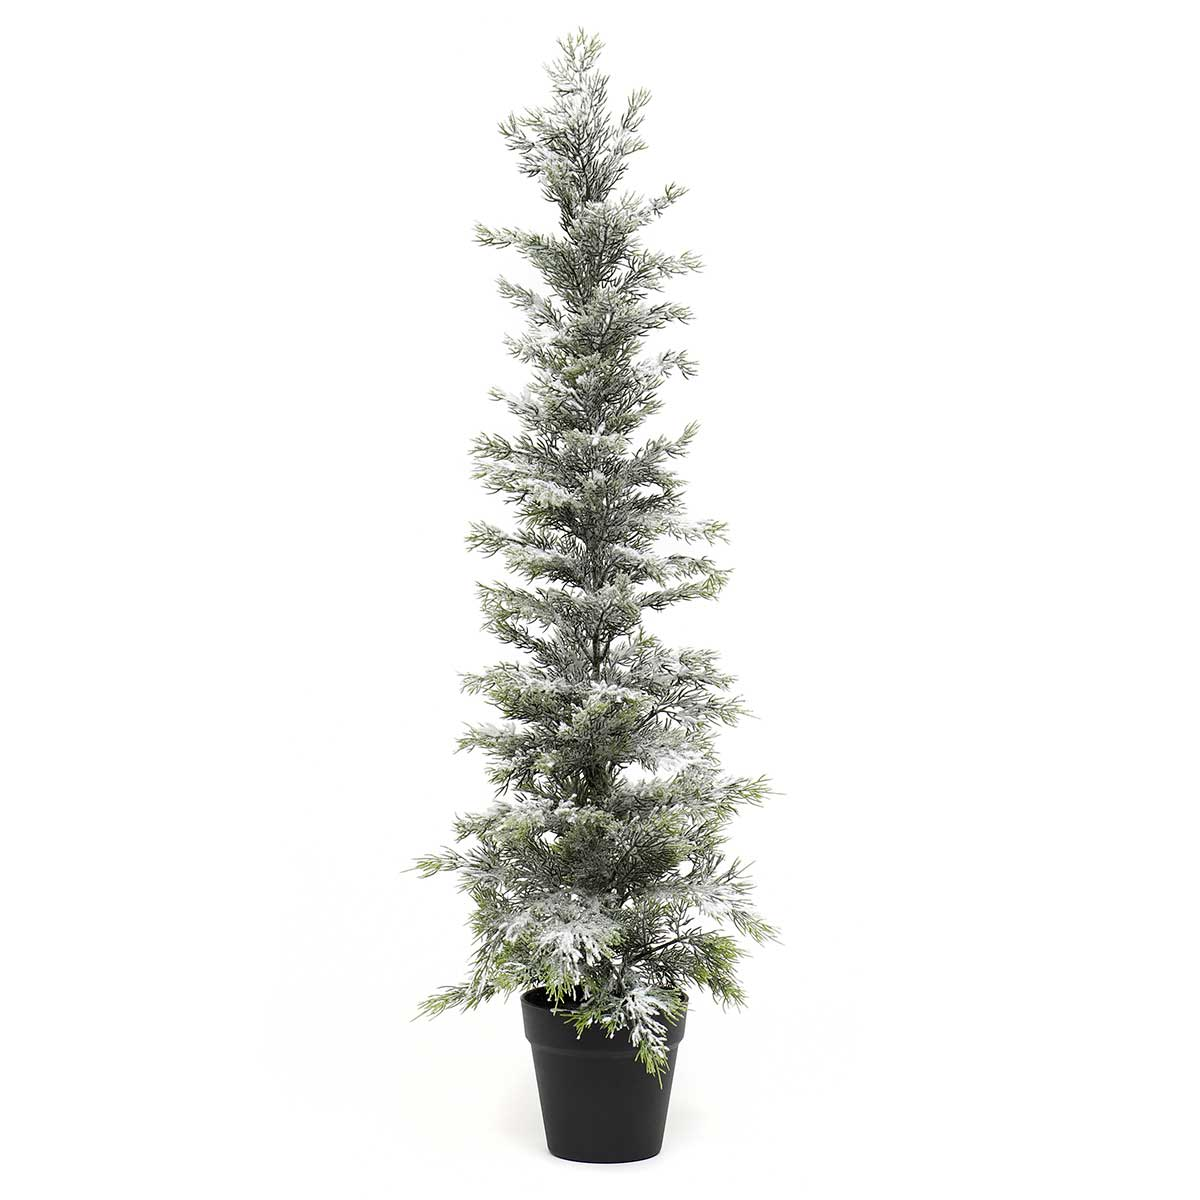 "SNOWED EVERGREEN TREE IN BLACK POT EXTRA LARGE 12""X36"""